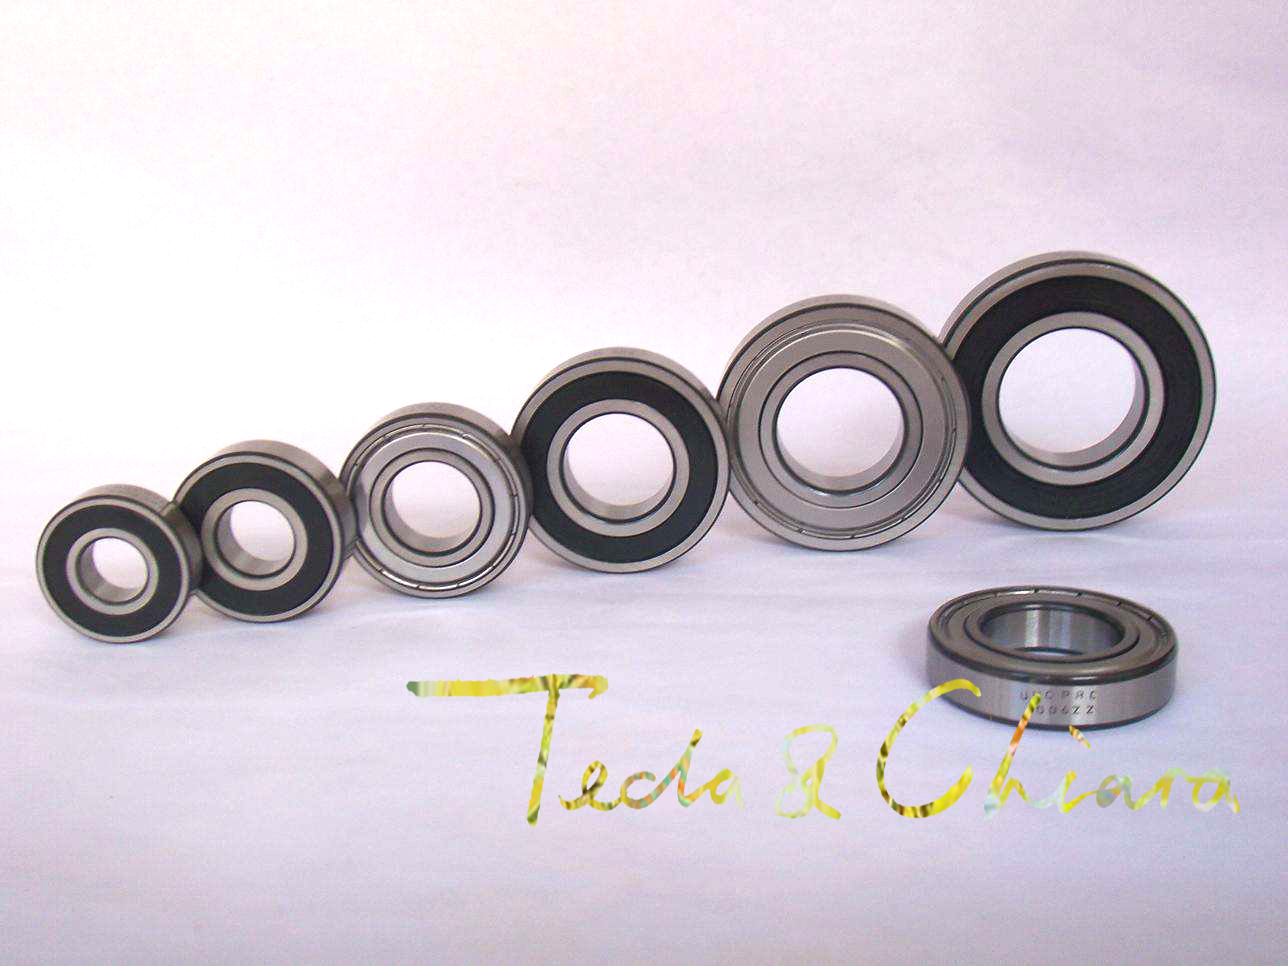 688 688ZZ 688RS 688-2Z 688Z 688-2RS ZZ RS RZ 2RZ Deep Groove Ball Bearings 8 X 16 X 5mm